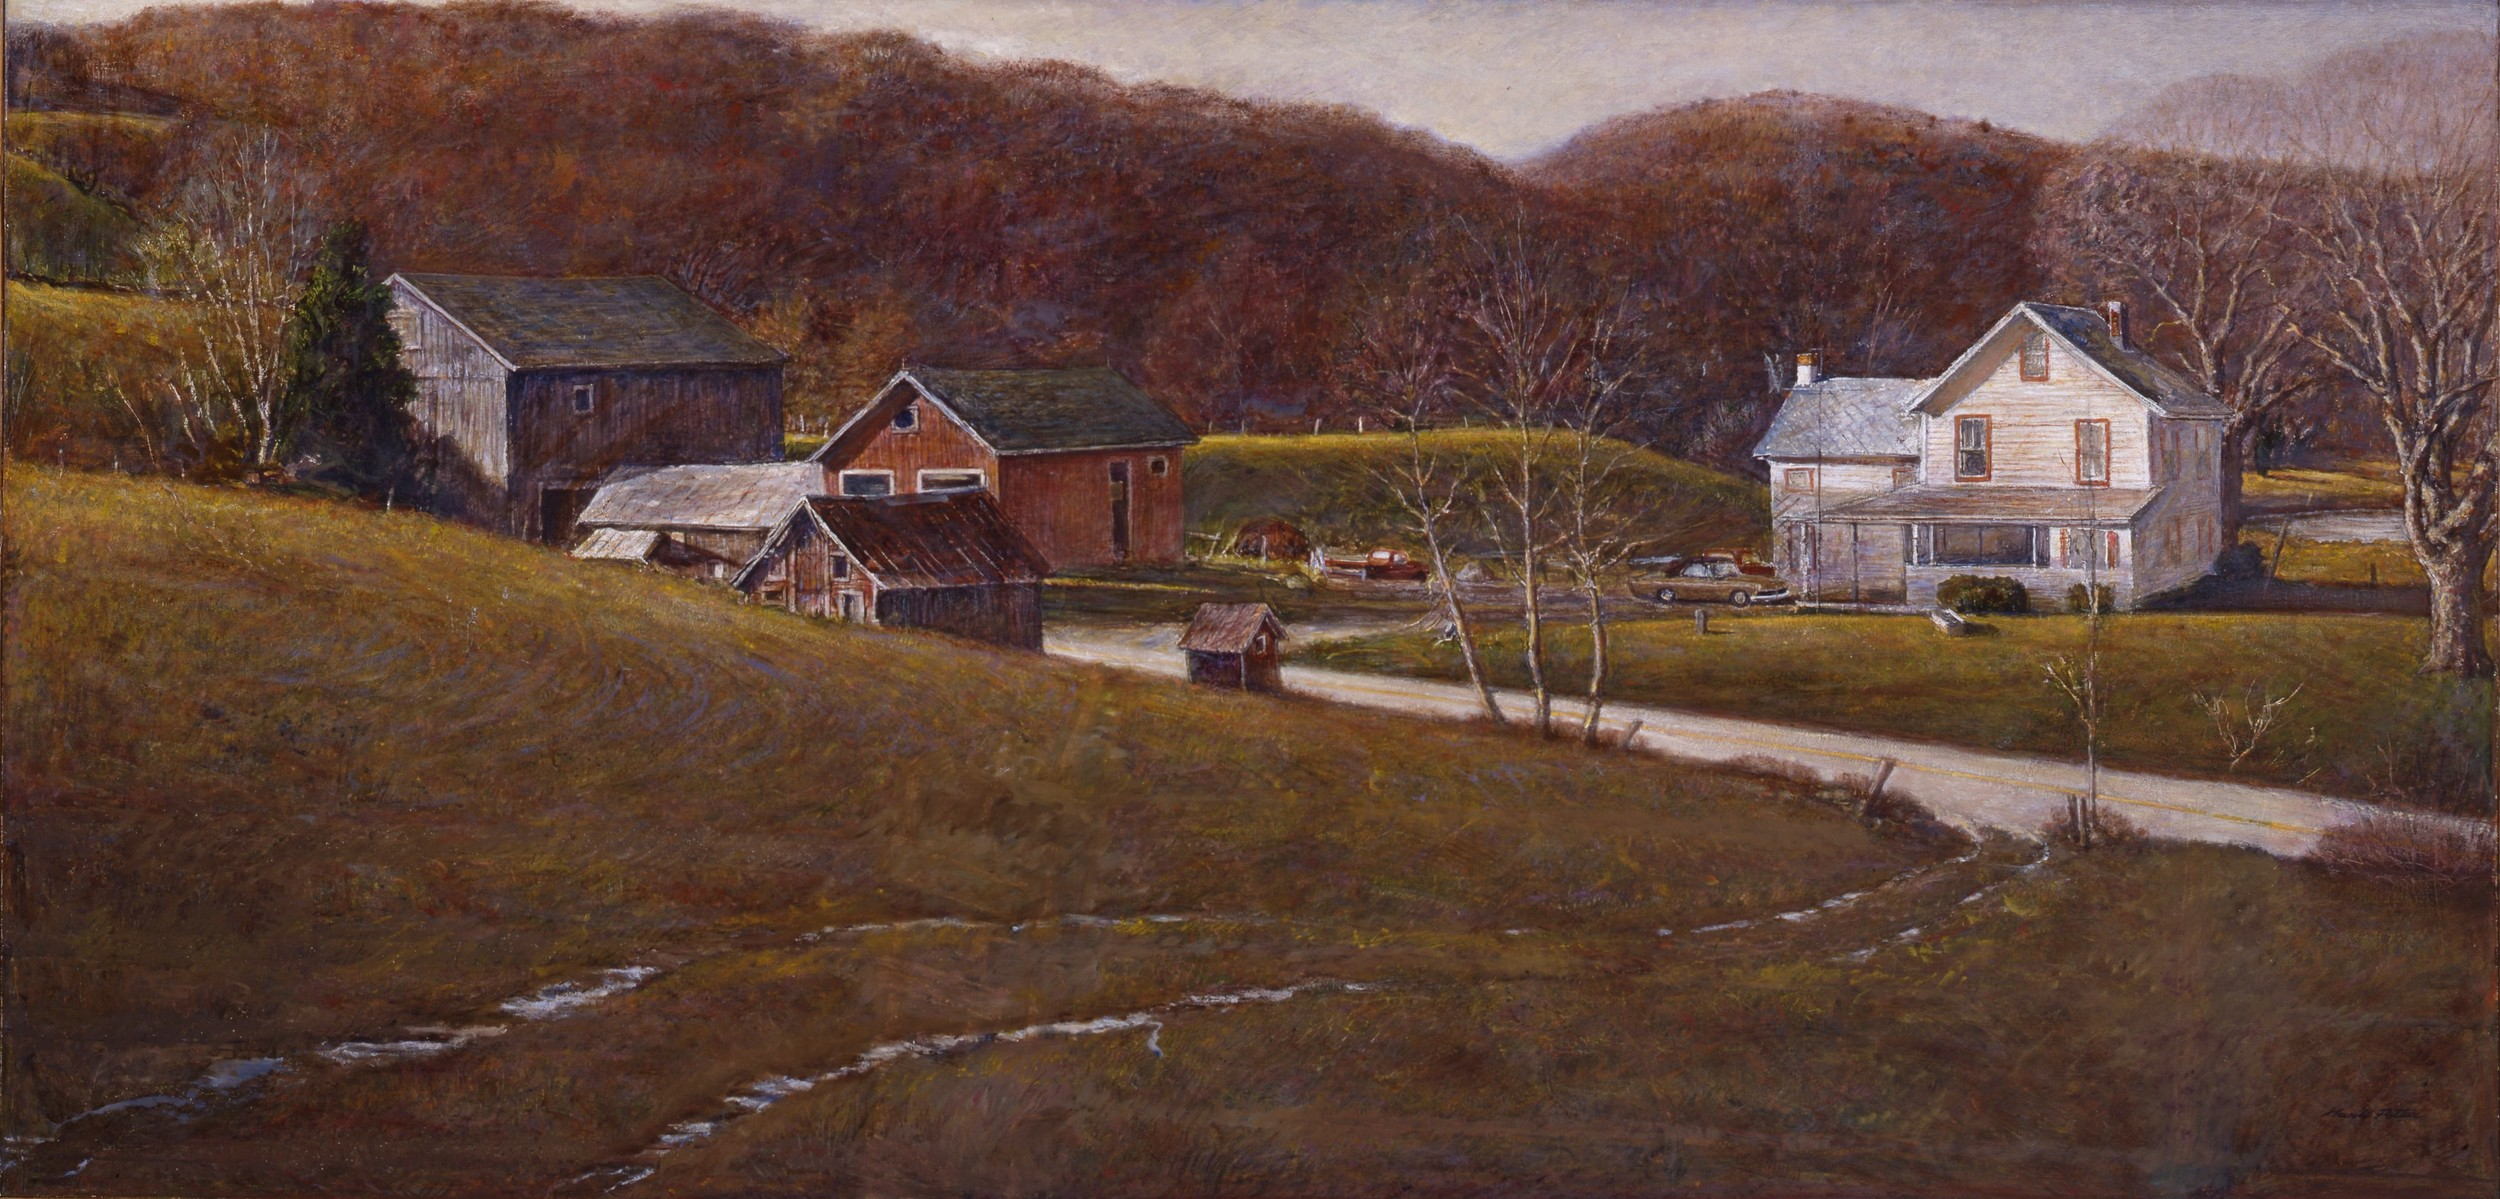 Before Nightfall at Judson's.      1988-1995, tempera on panel. 30 x 80 inches. Private Collection.